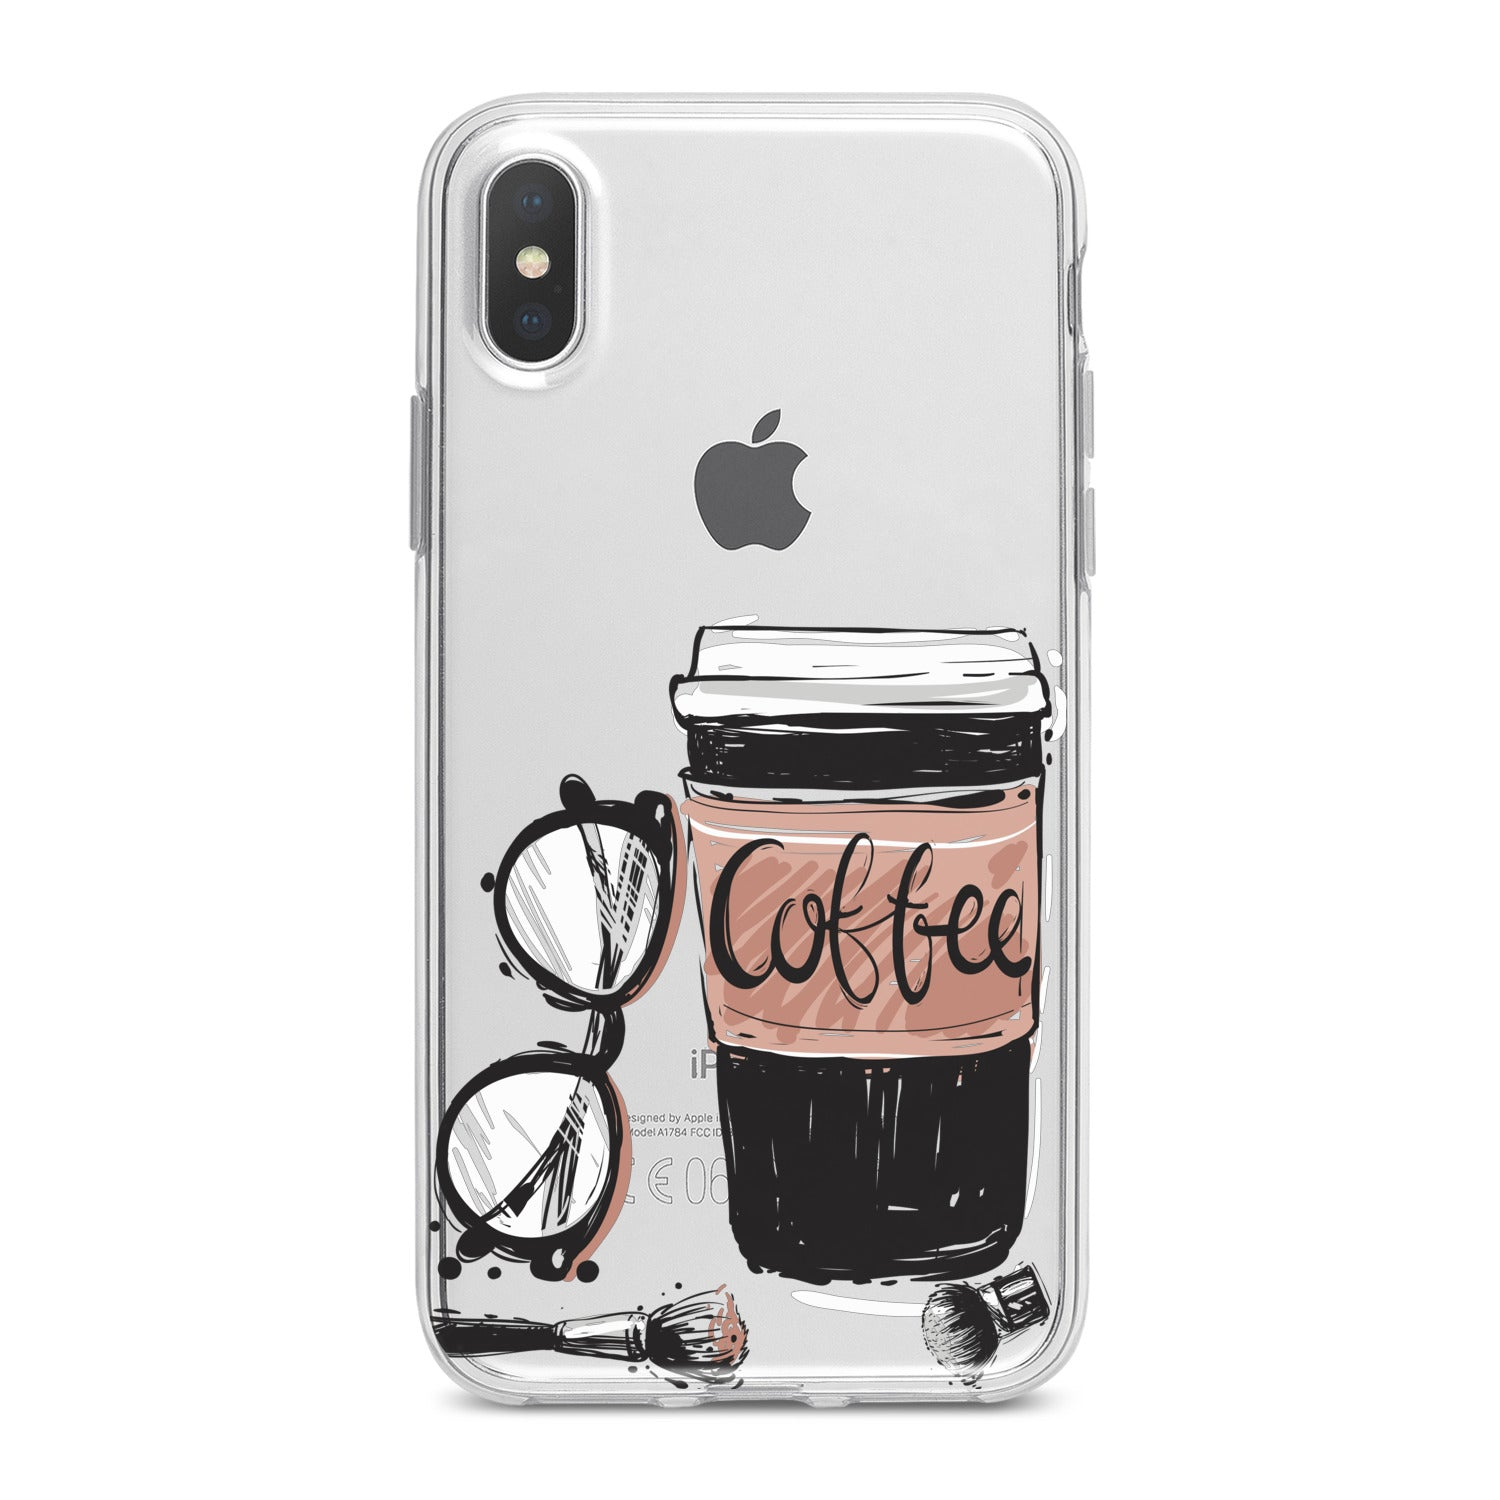 Lex Altern Morning Coffe Phone Case for your iPhone & Android phone.